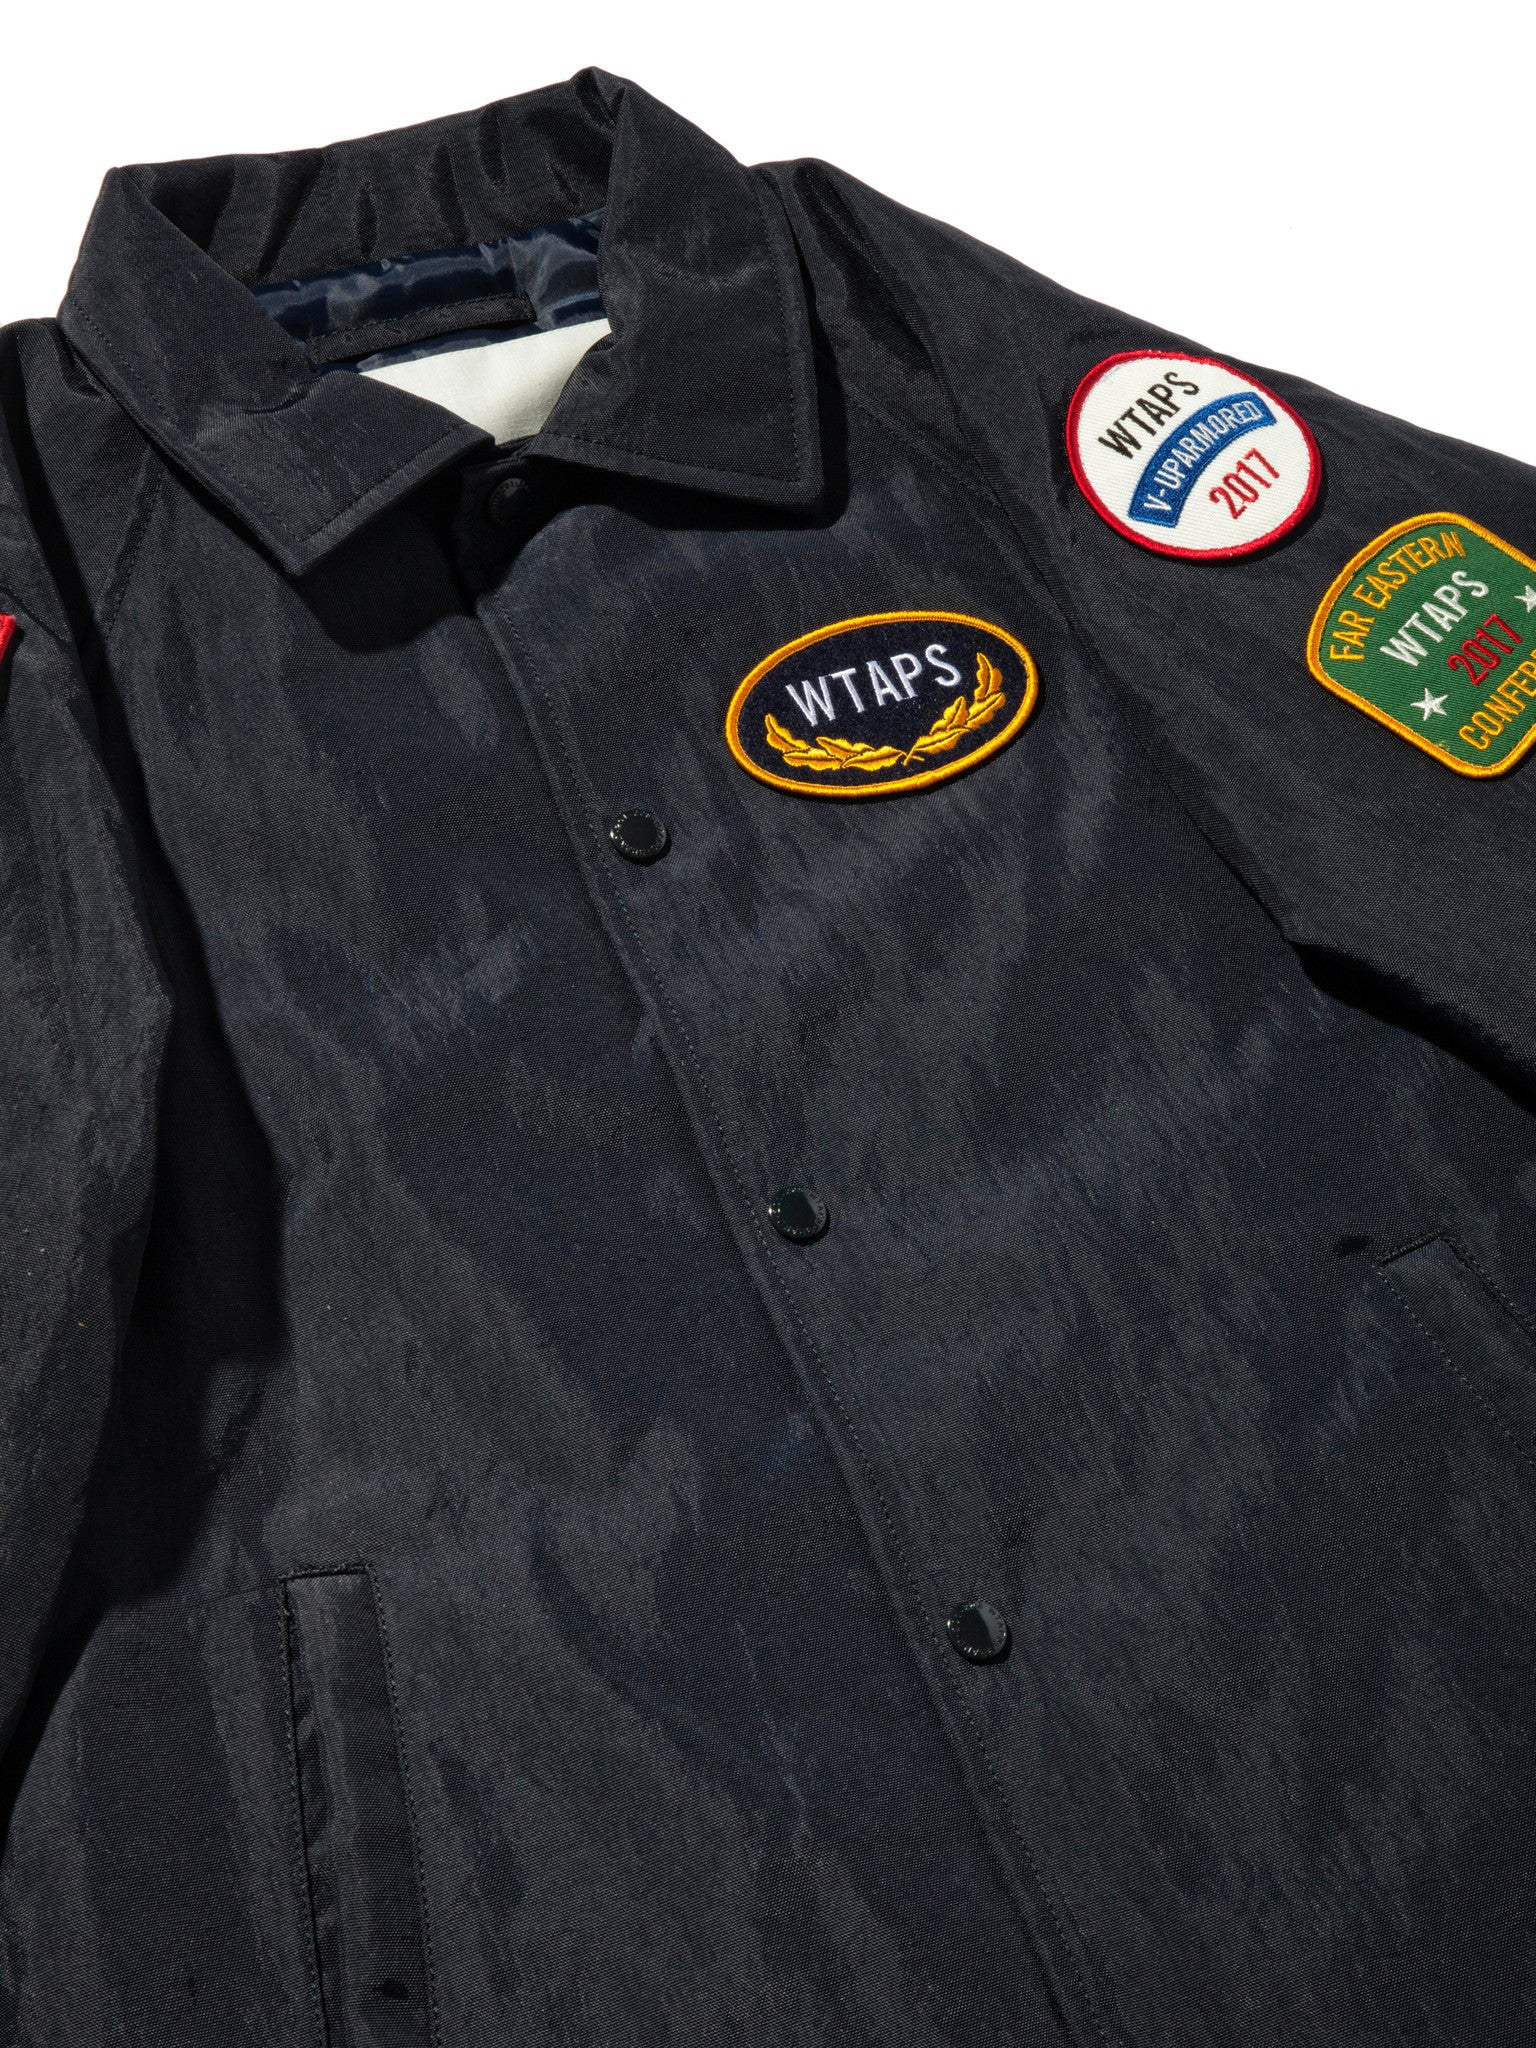 Navy Souvenir Jacket (Nylon) 7